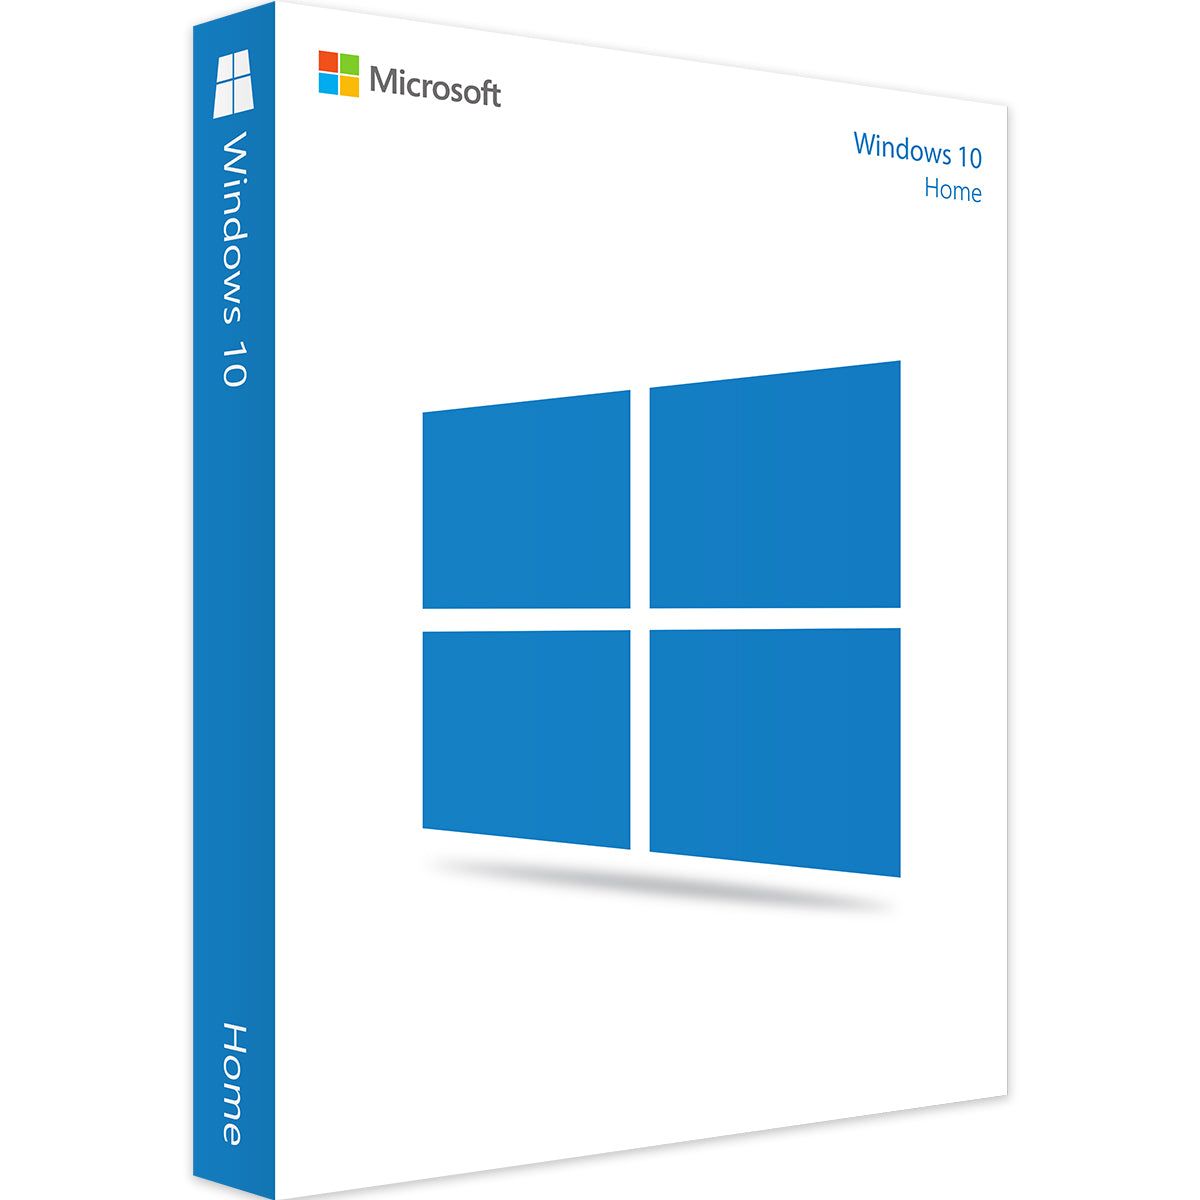 Microsoft Windows 10 Home - Software-Markt data-zoom=